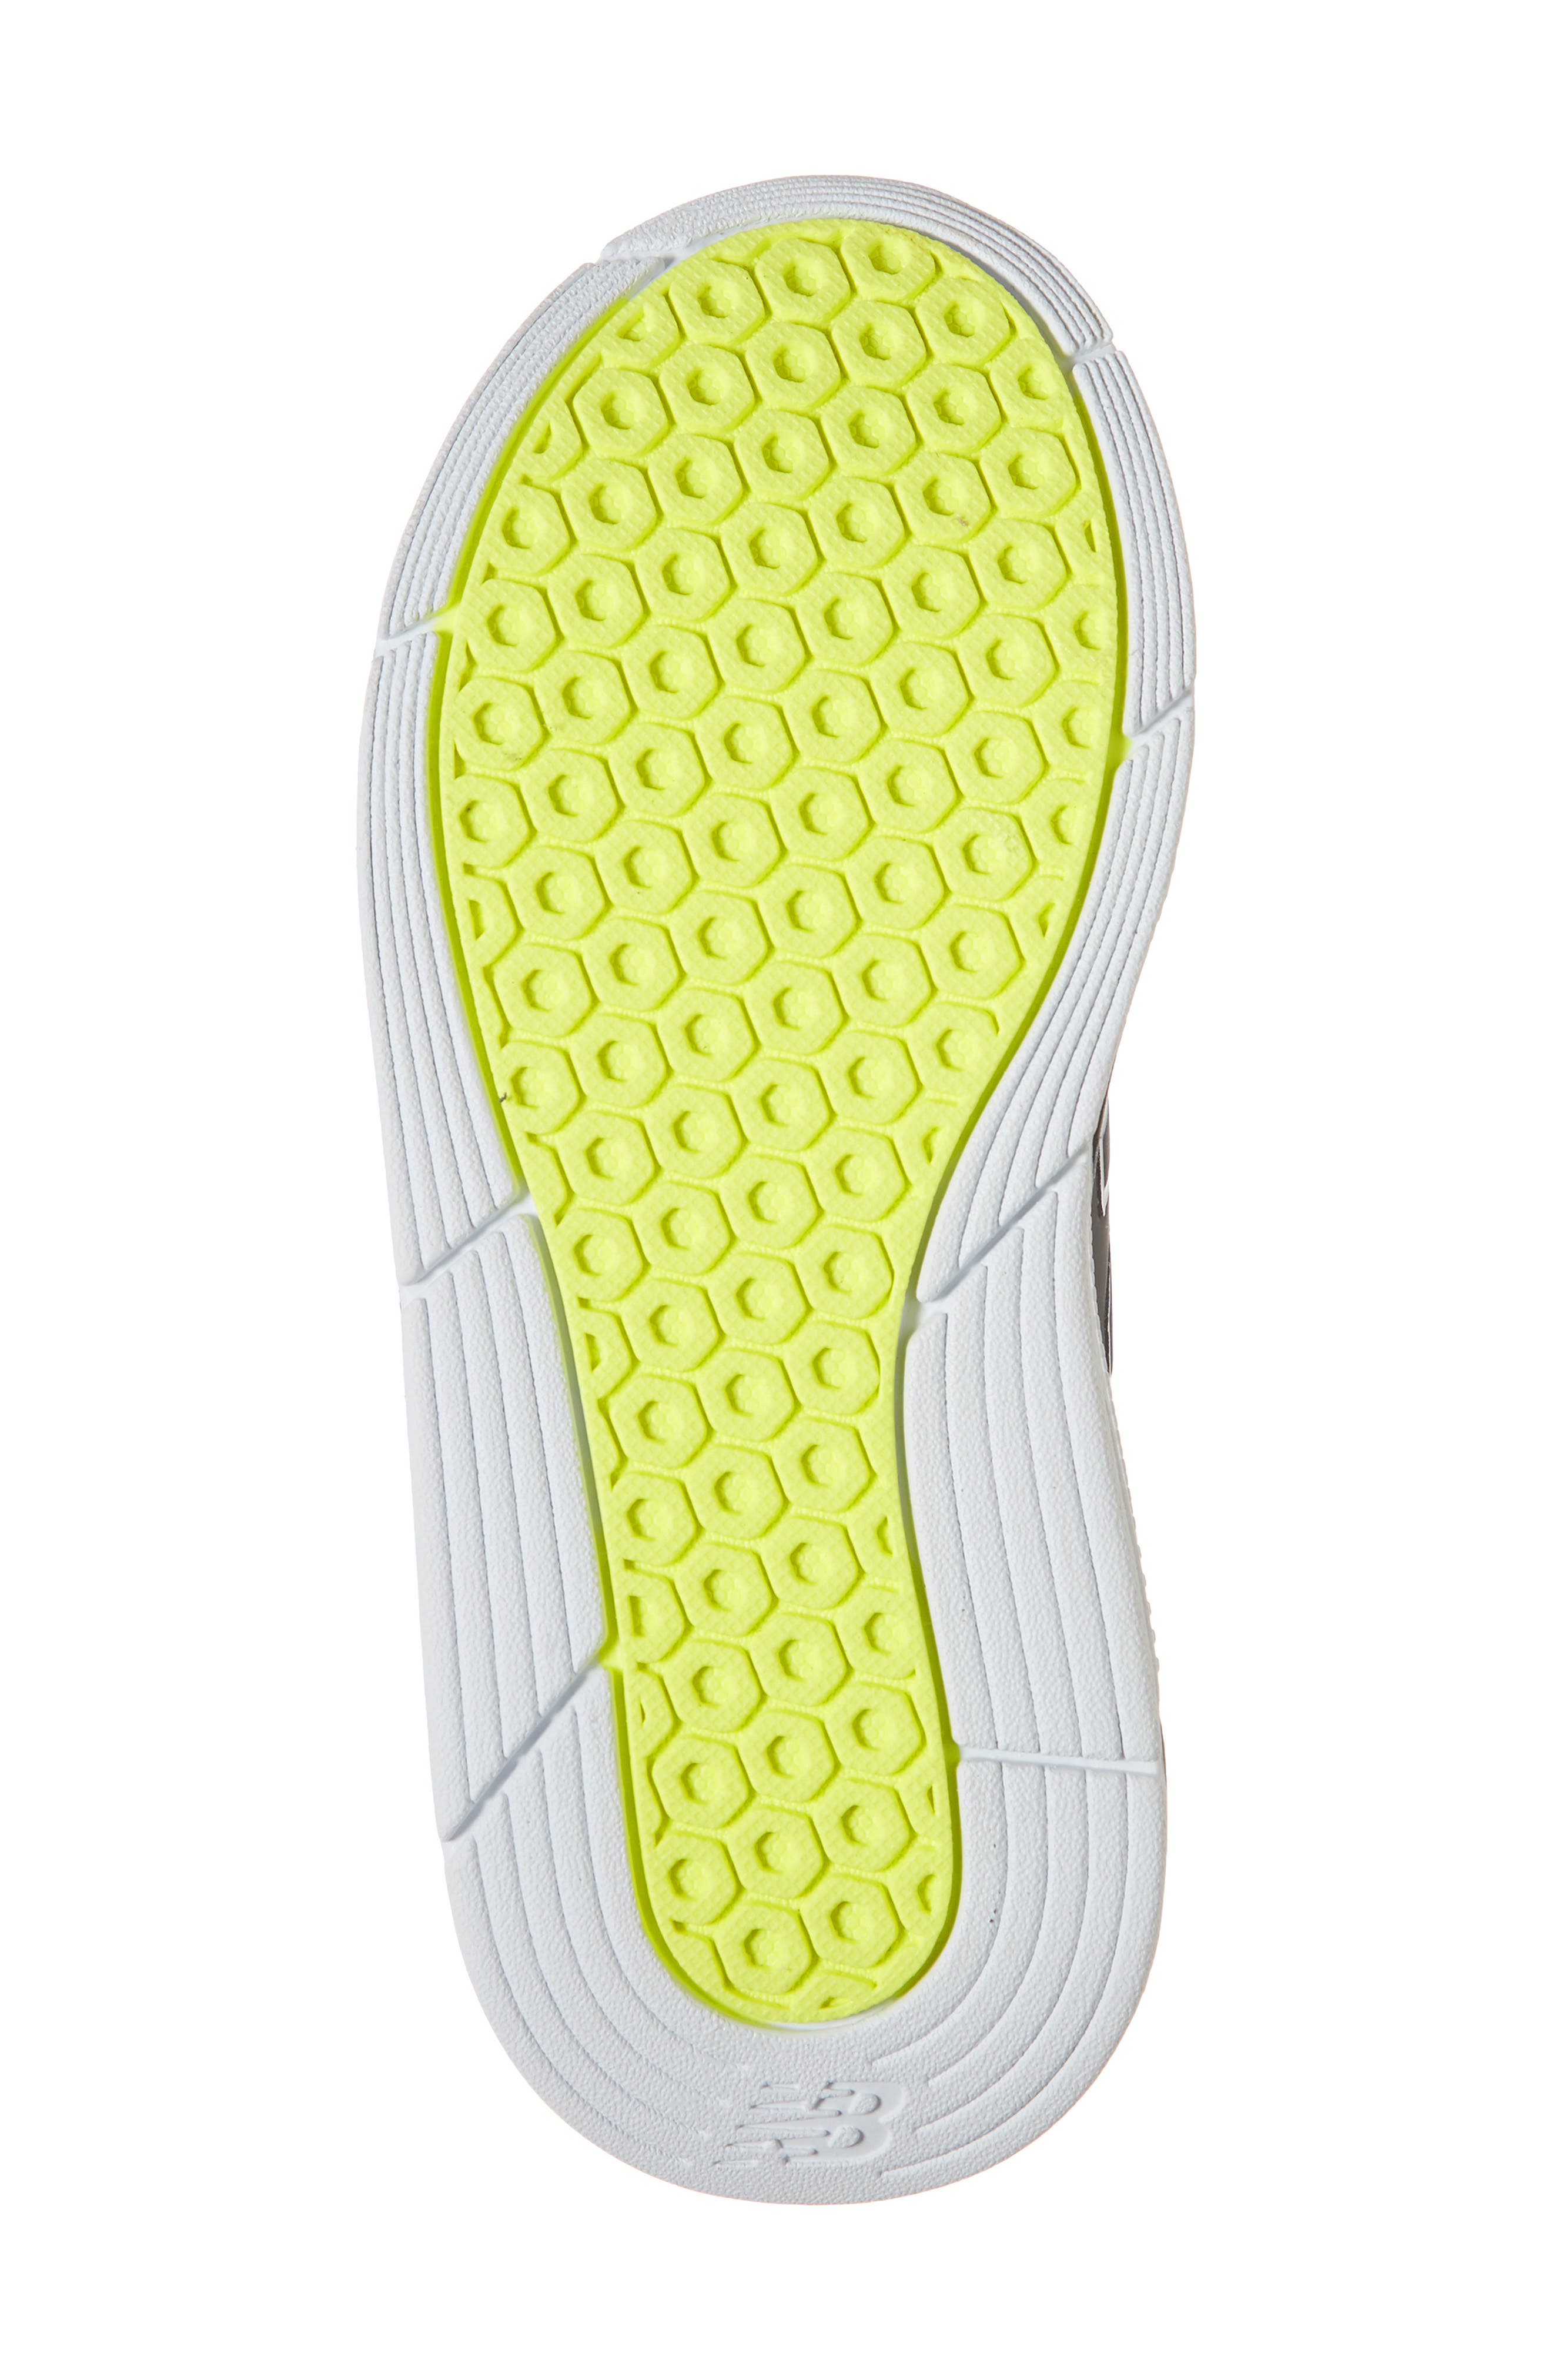 247 Sport Sneaker,                             Alternate thumbnail 6, color,